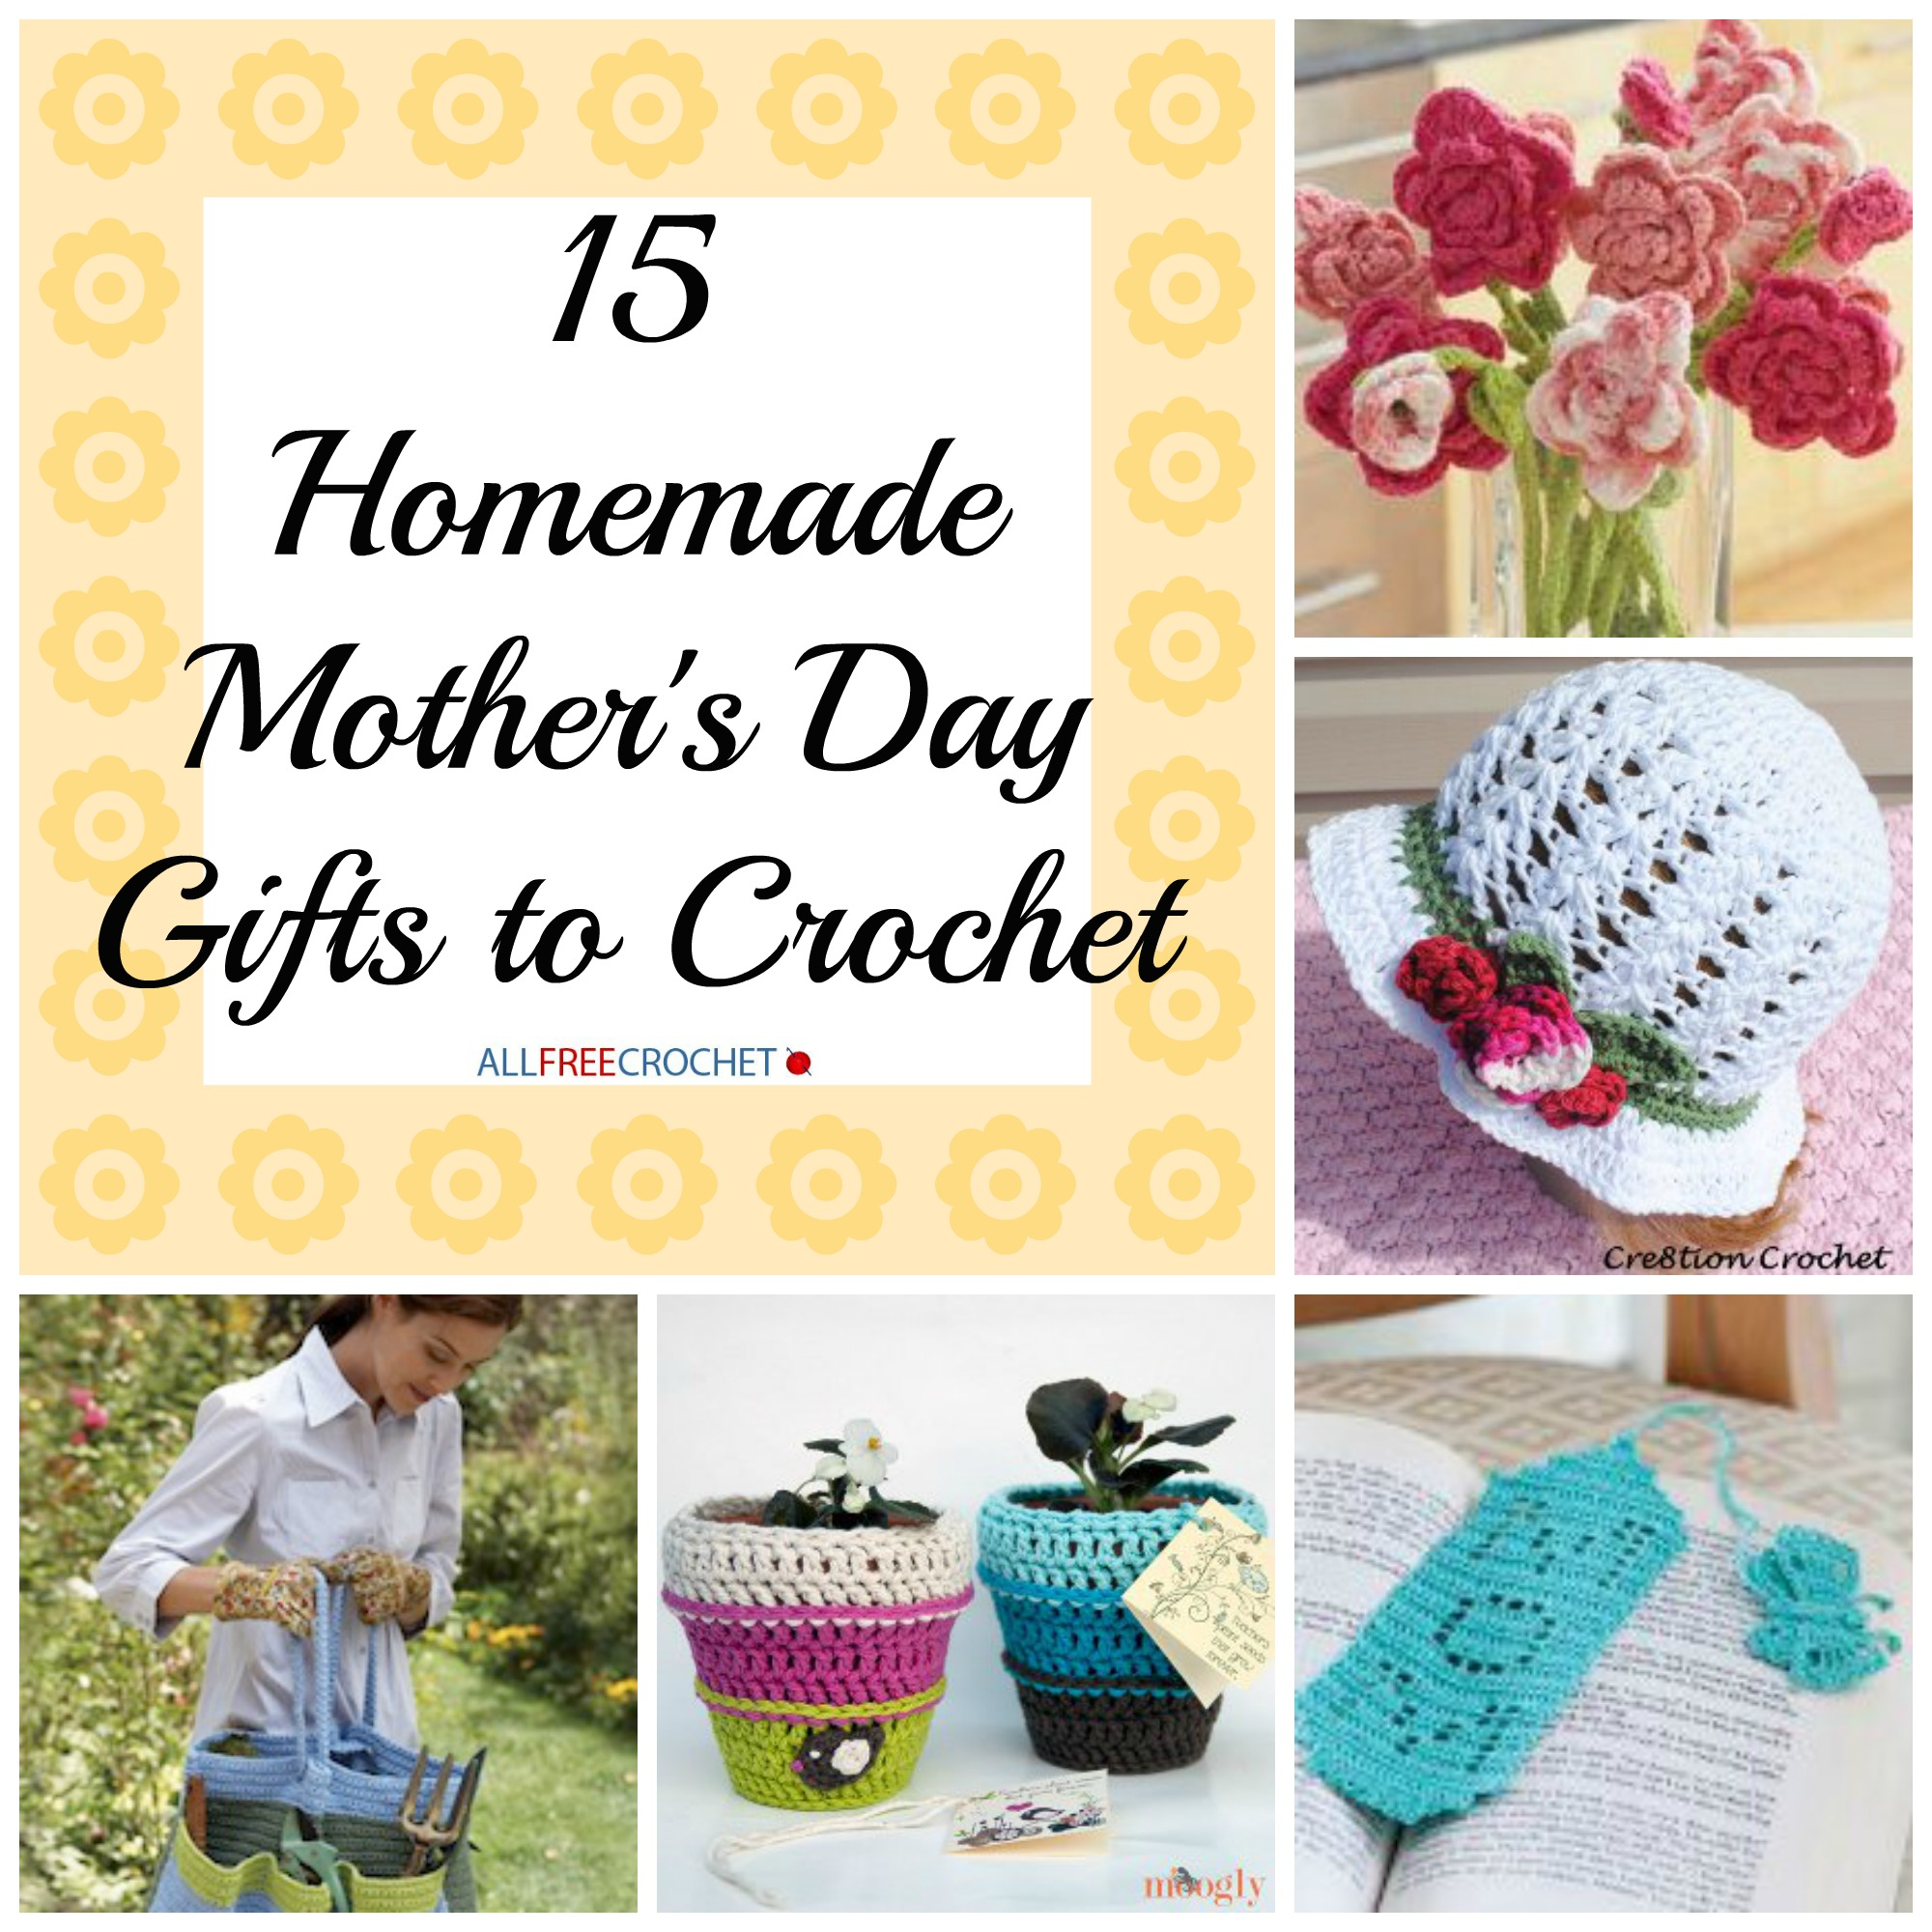 Crochet Patterns For Mother s Day : 15 Homemade Mothers Day Gifts to Crochet - Stitch and Unwind